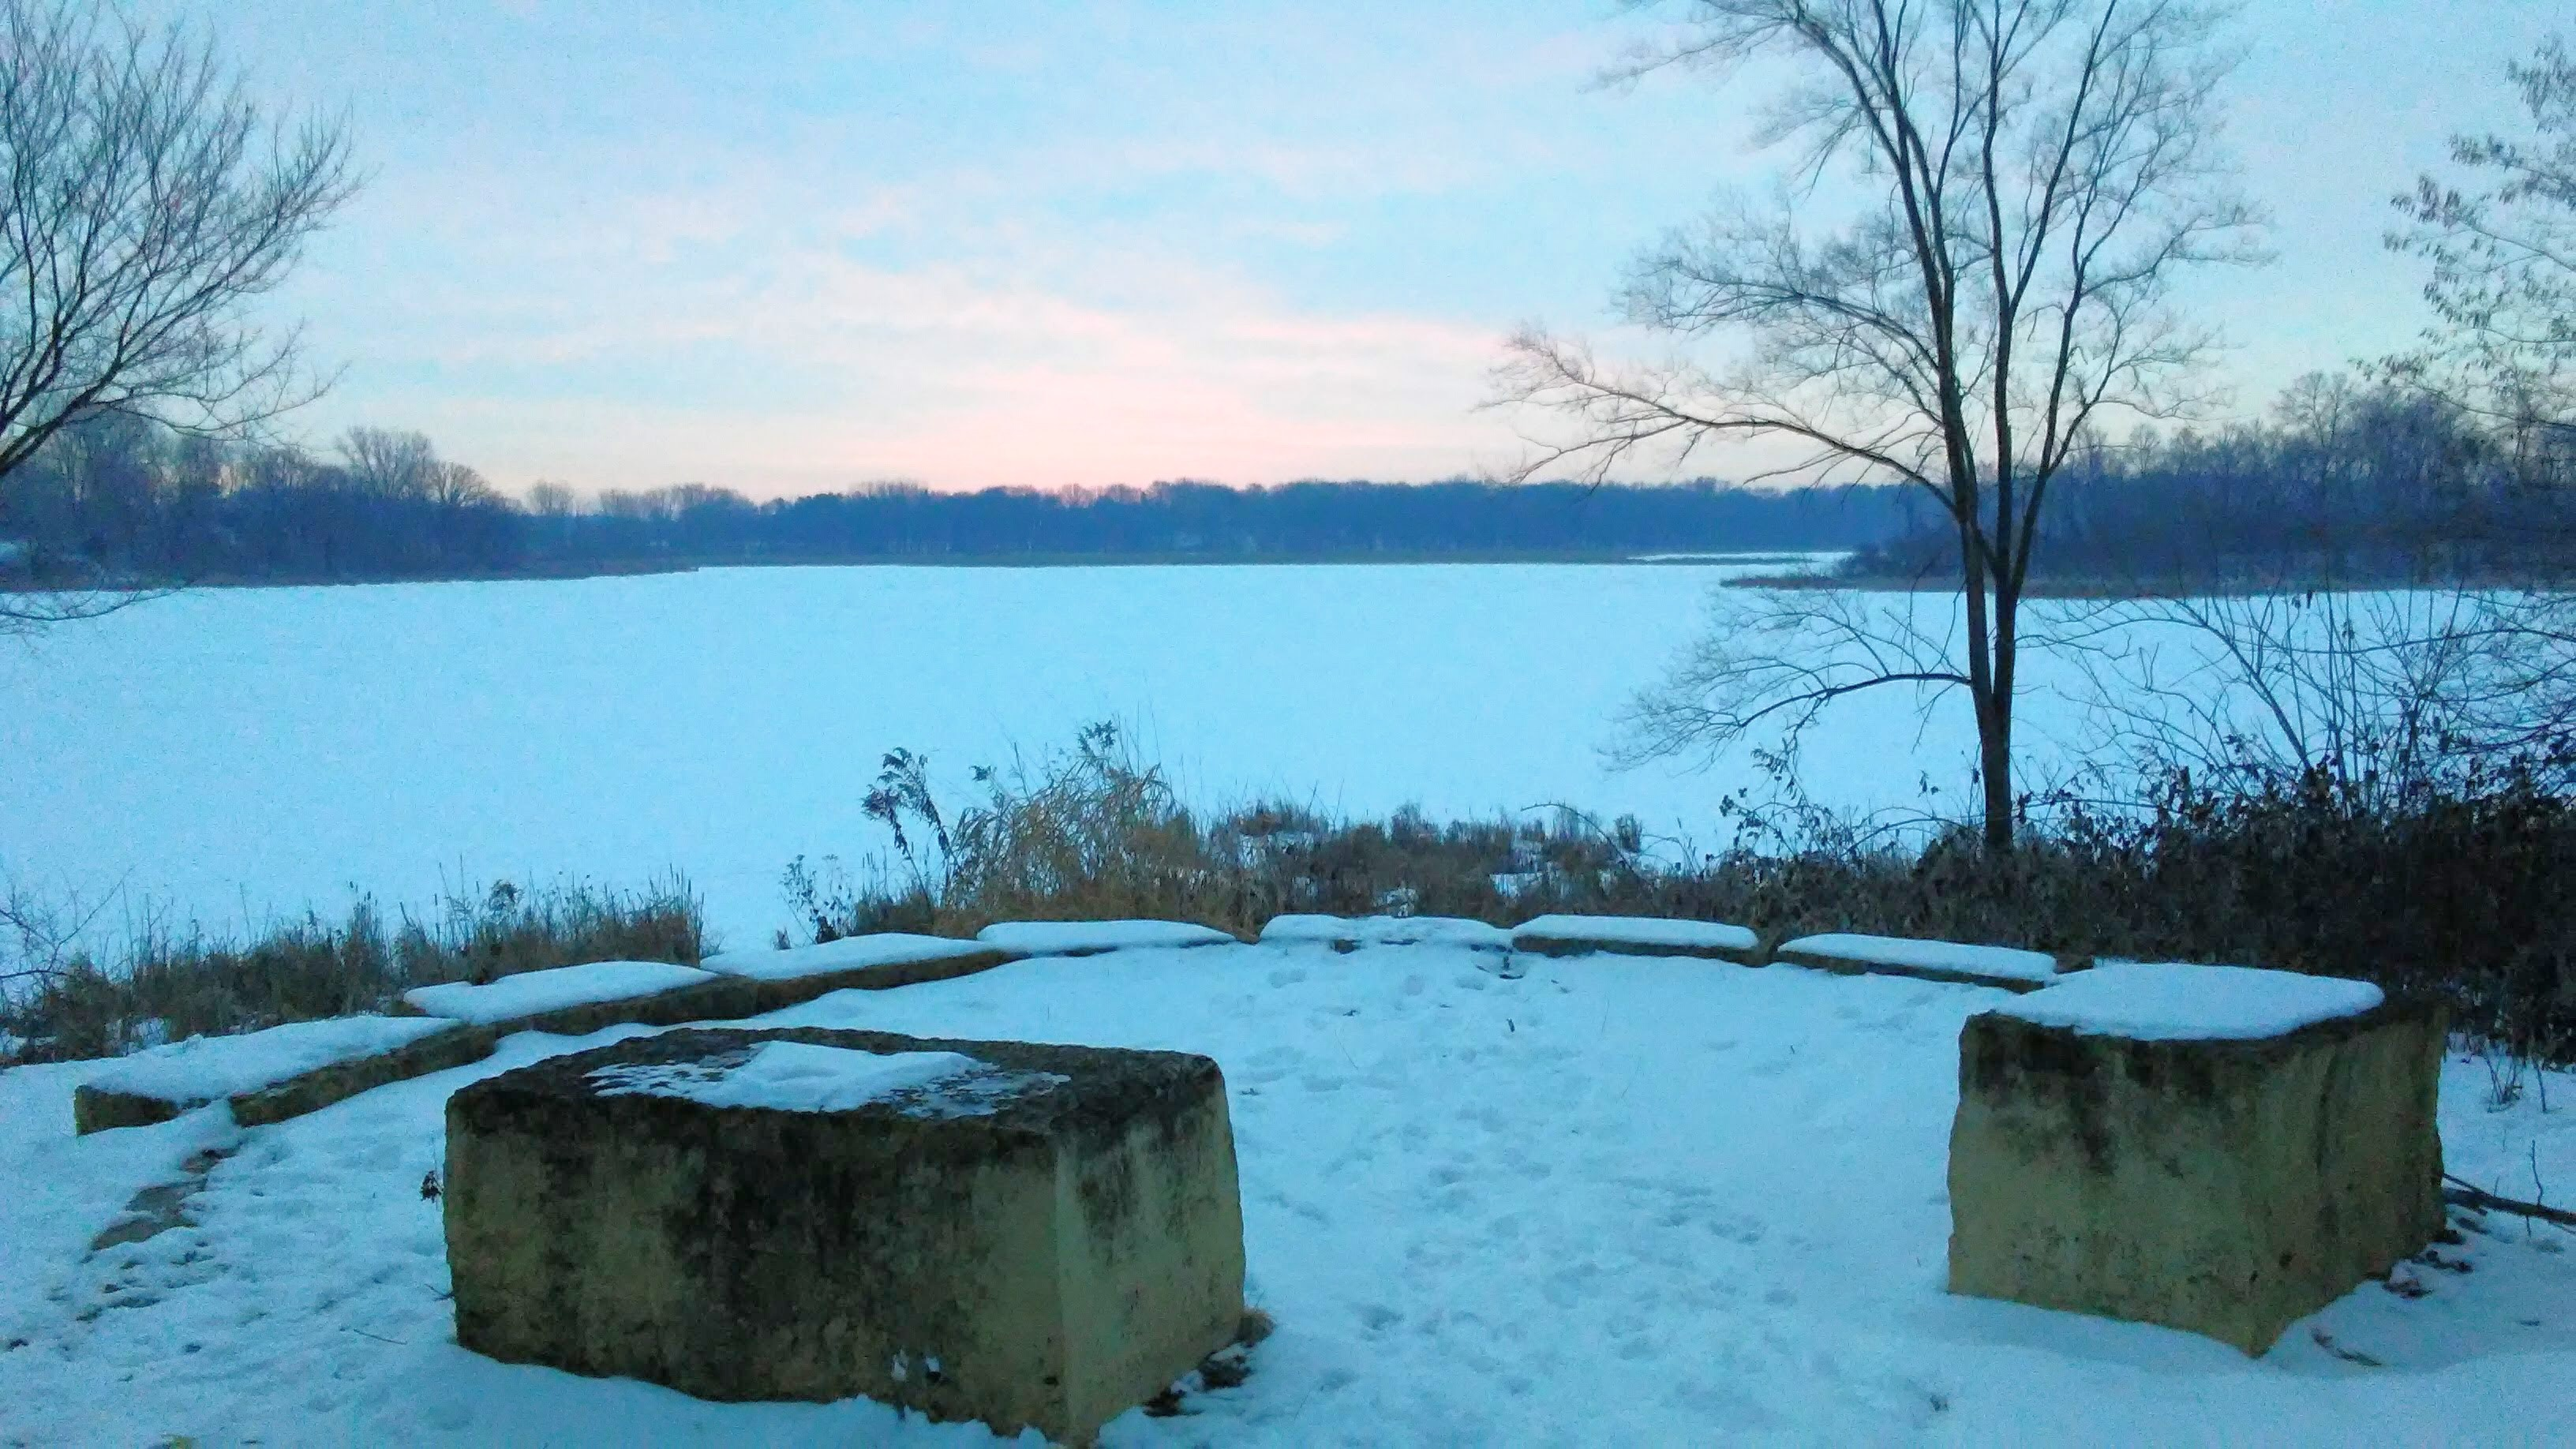 winter scene with lake and square stone seats